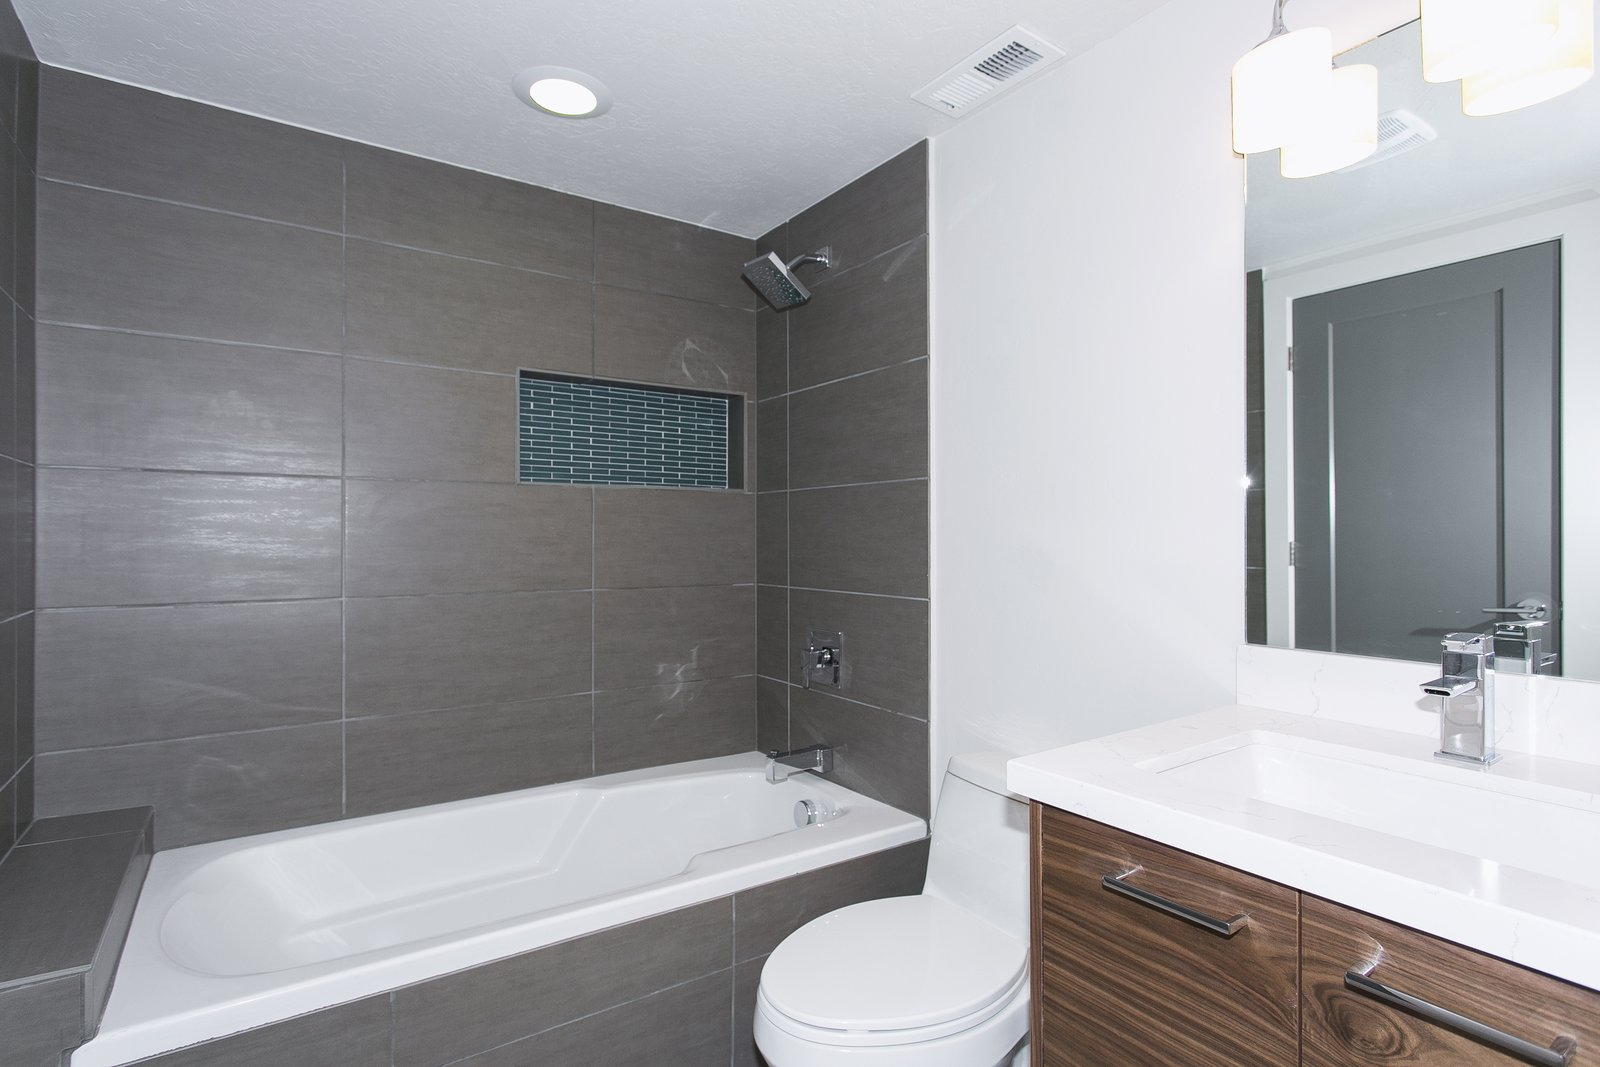 All baths have been updated with new horizontal straight lay tile with convenient storage nooks.